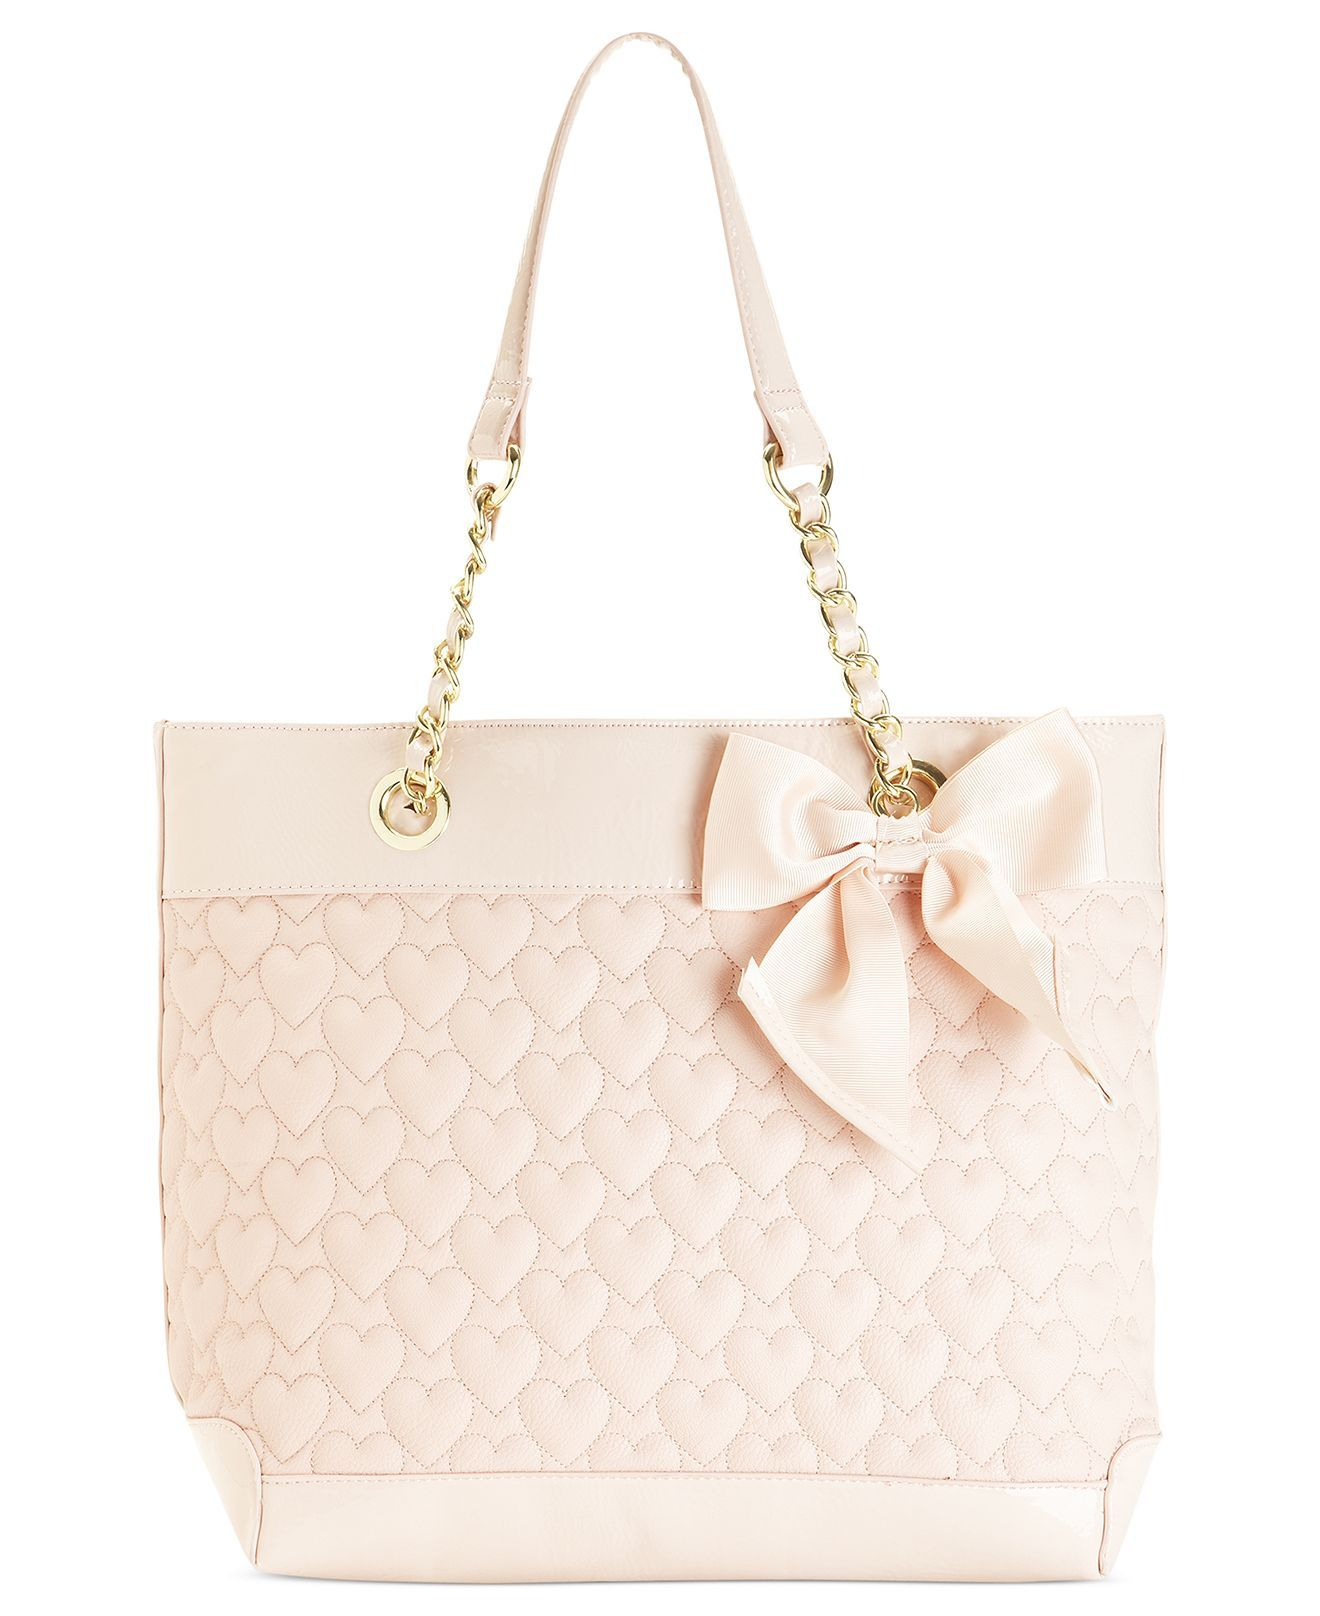 Betsey Johnson Handbag Heart Quilted Tote